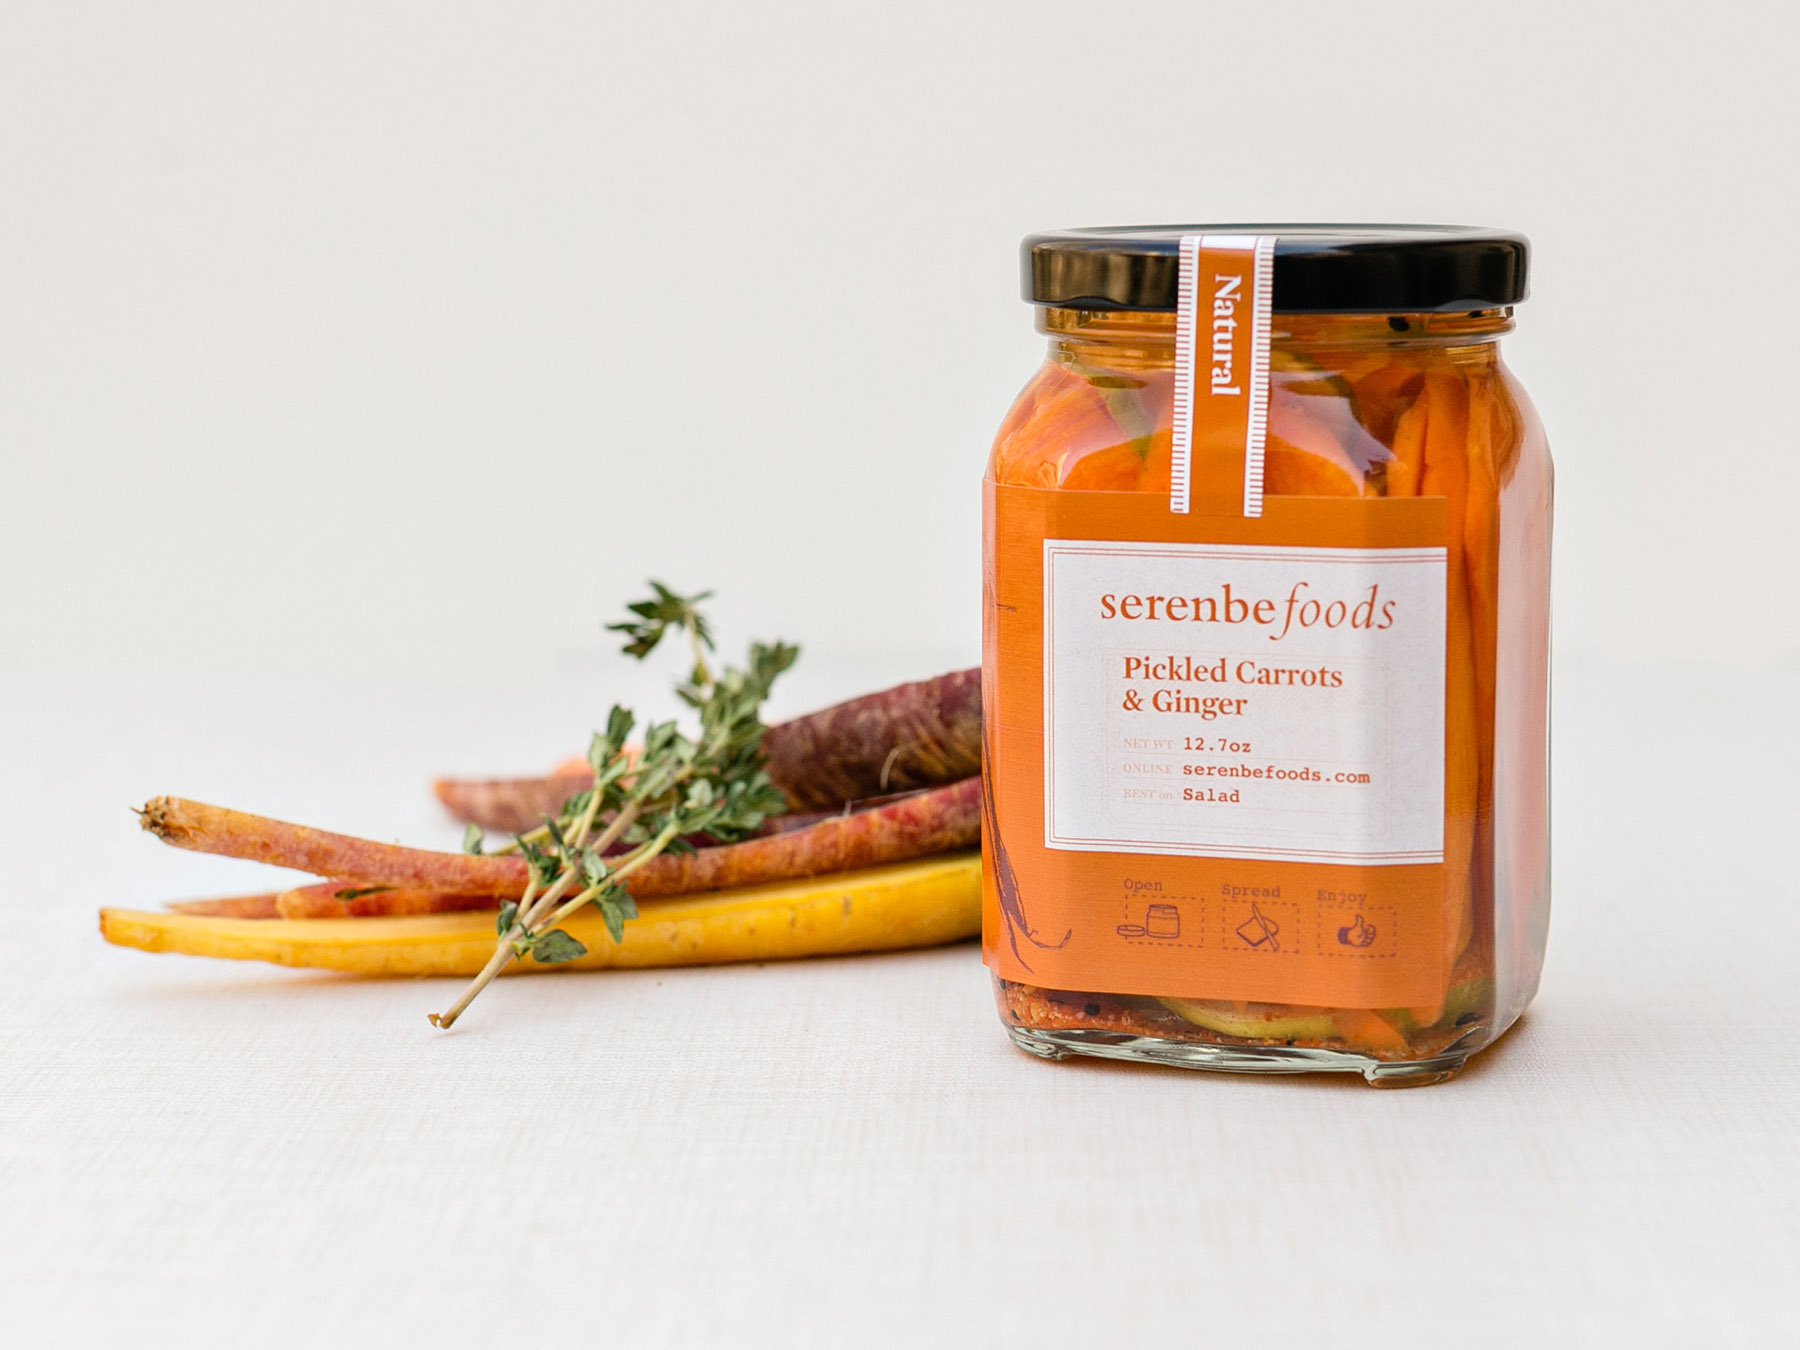 Carrots lay behind jar of pickled carrots and ginger, featuring the label design and brand identity and logo for Serenbe Foods line of jams and consumer packaged goods.